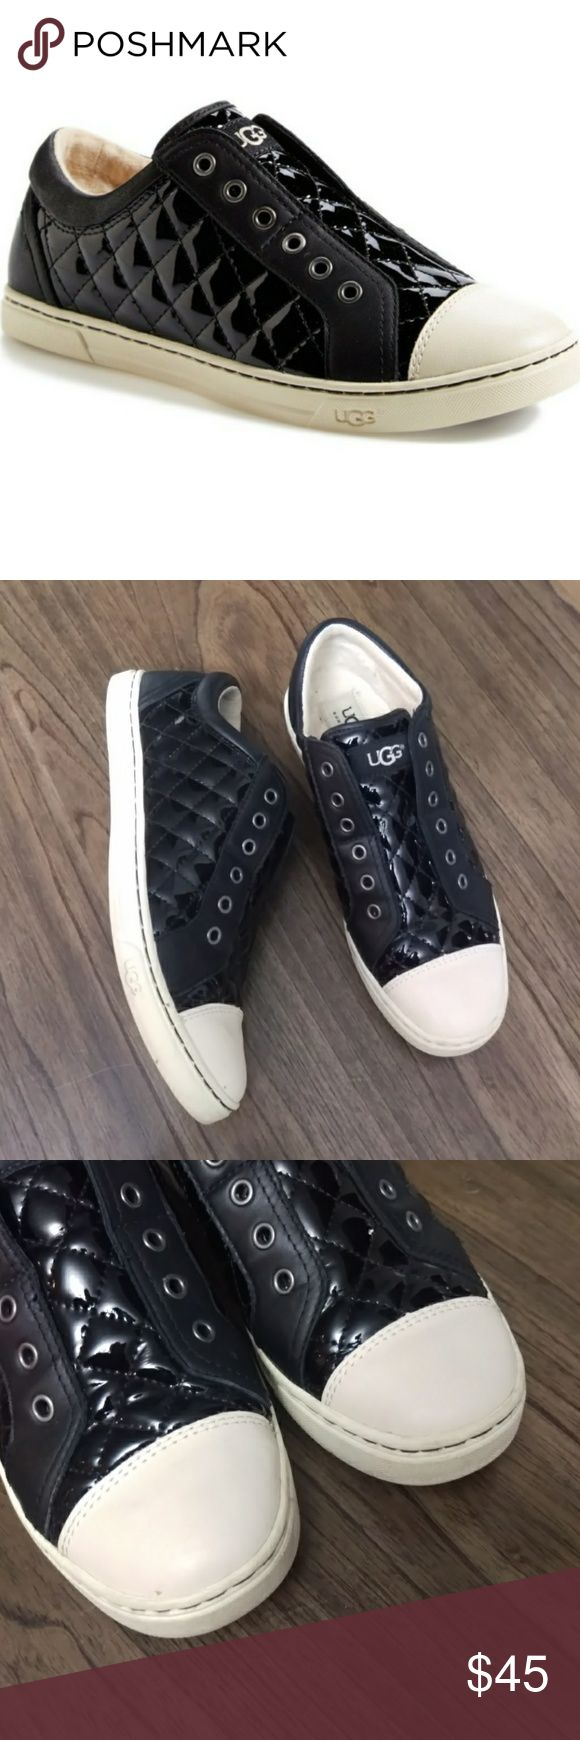 Australia UGG 'Jemma' Quilted Sneaker Pre-owned in good condition. Worn few times. Size 7.5.  Sleek diamond quilting and a laceless design update a classic cap-toe sneaker equipped with hidden elastic goring at the tongue for easy slip-on entry. UGG Shoes Flats & Loafers